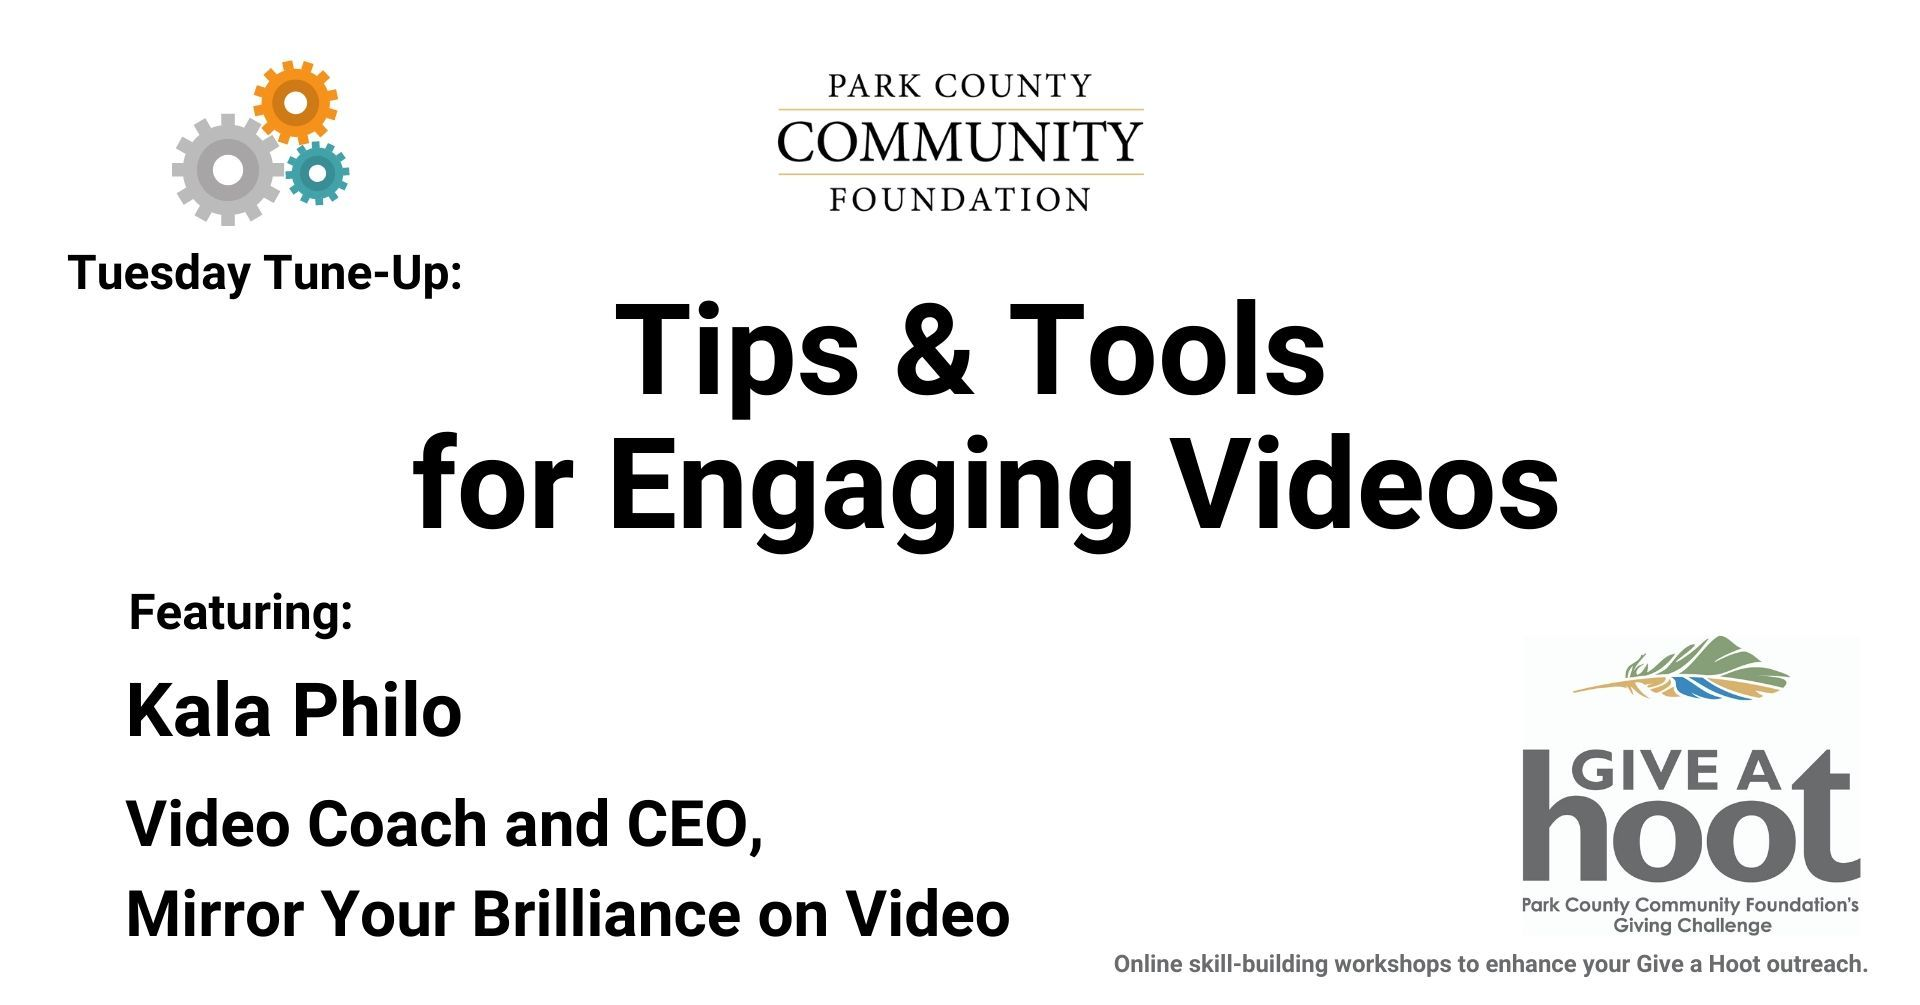 Tips & Tools for Engaging Videos